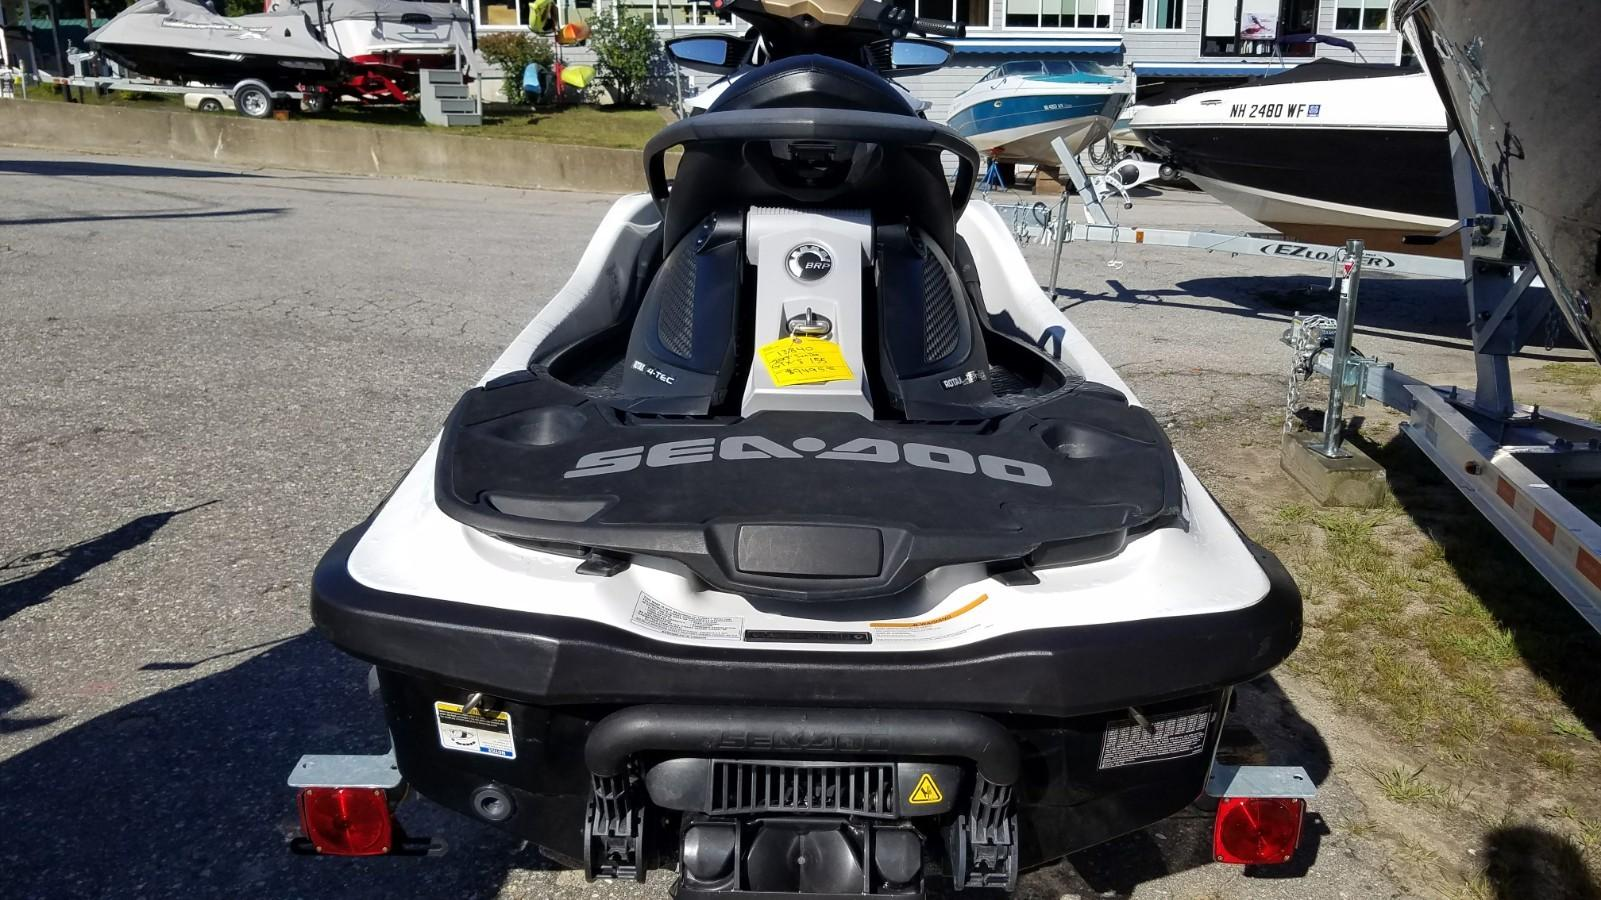 2013 Sea Doo PWC boat for sale, model of the boat is GTX S 155 & Image # 2 of 8